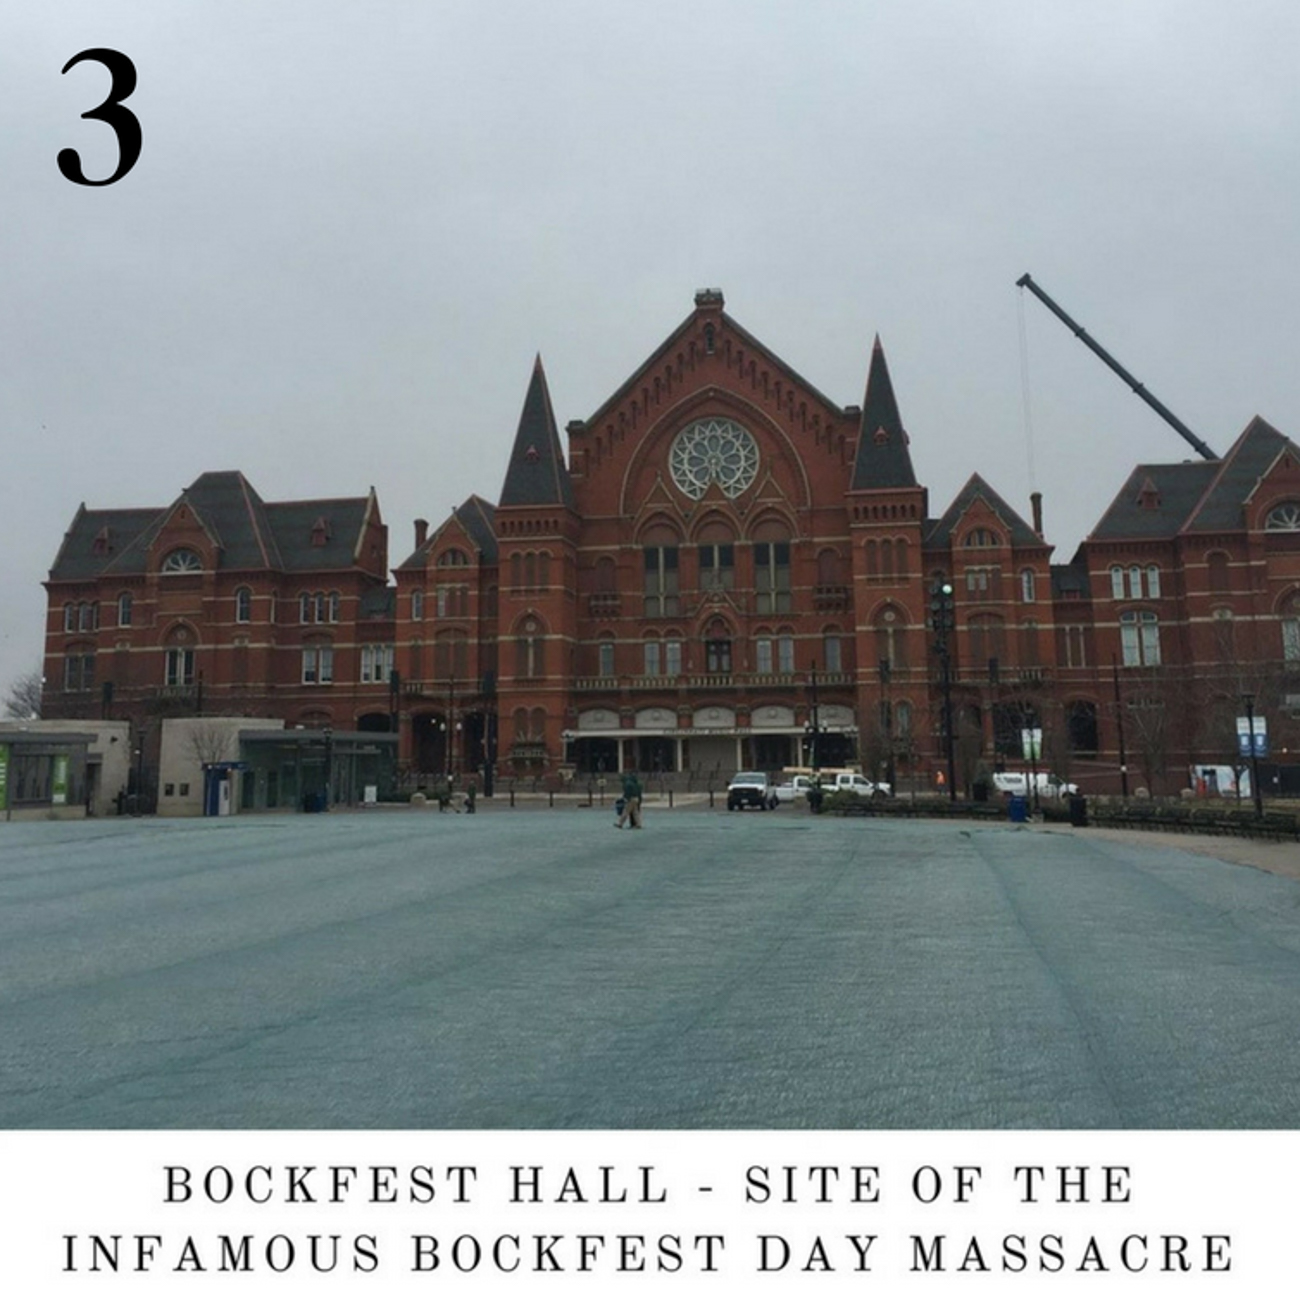 #3 - John David Back takes the same picture of Music Hall and posts it to his Instagram account with a nonsensical caption every time. He's been doing it for over a year. Head to the Travel section to see what we mean. / Image: IG user @johndavidback